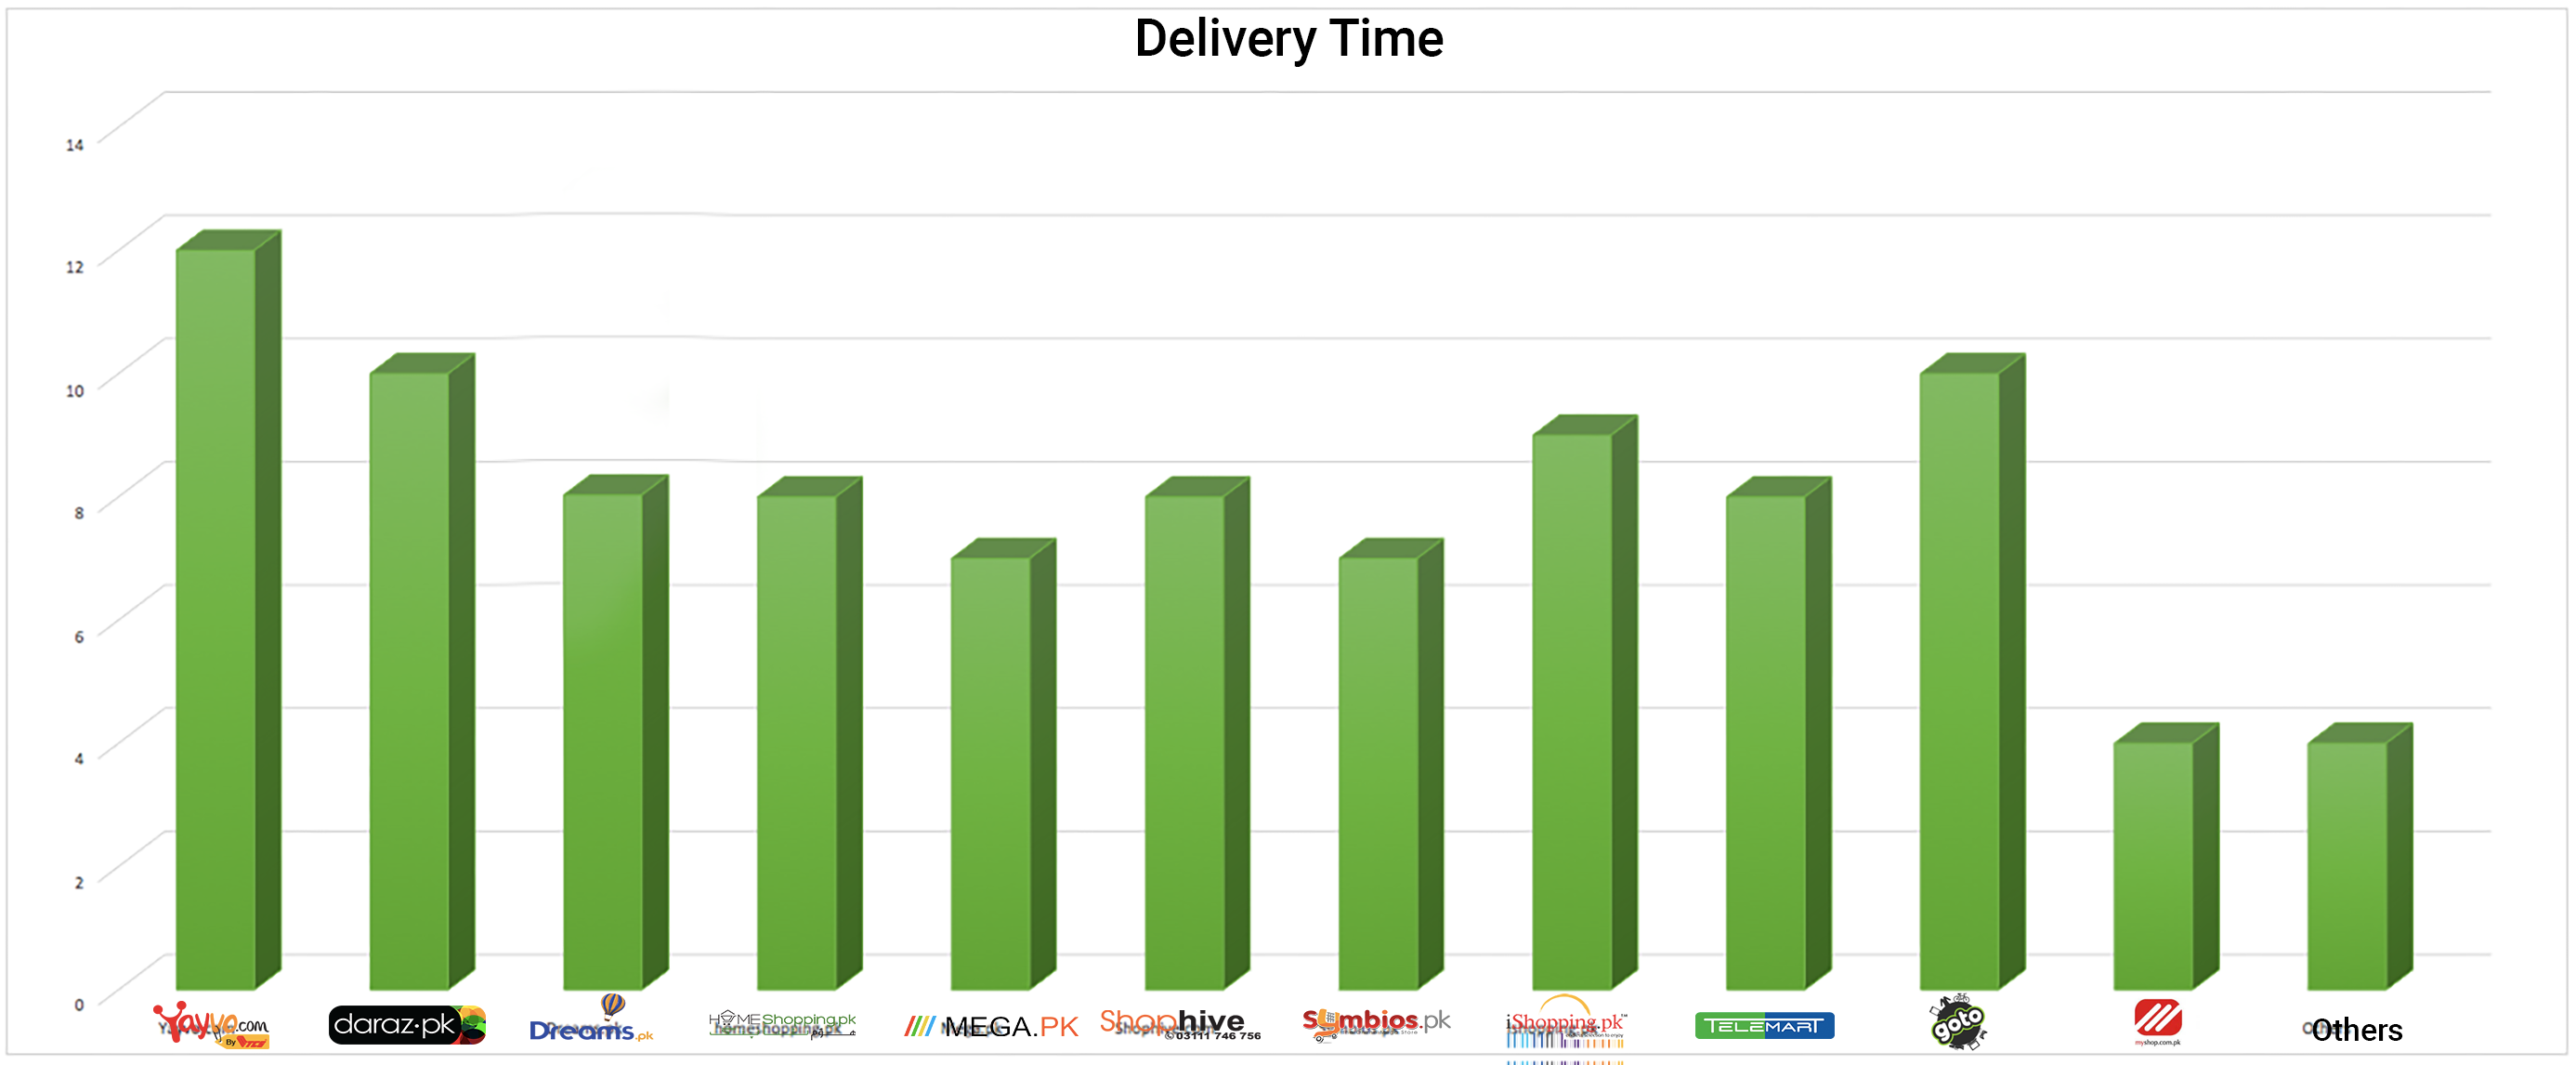 Delivery time of products